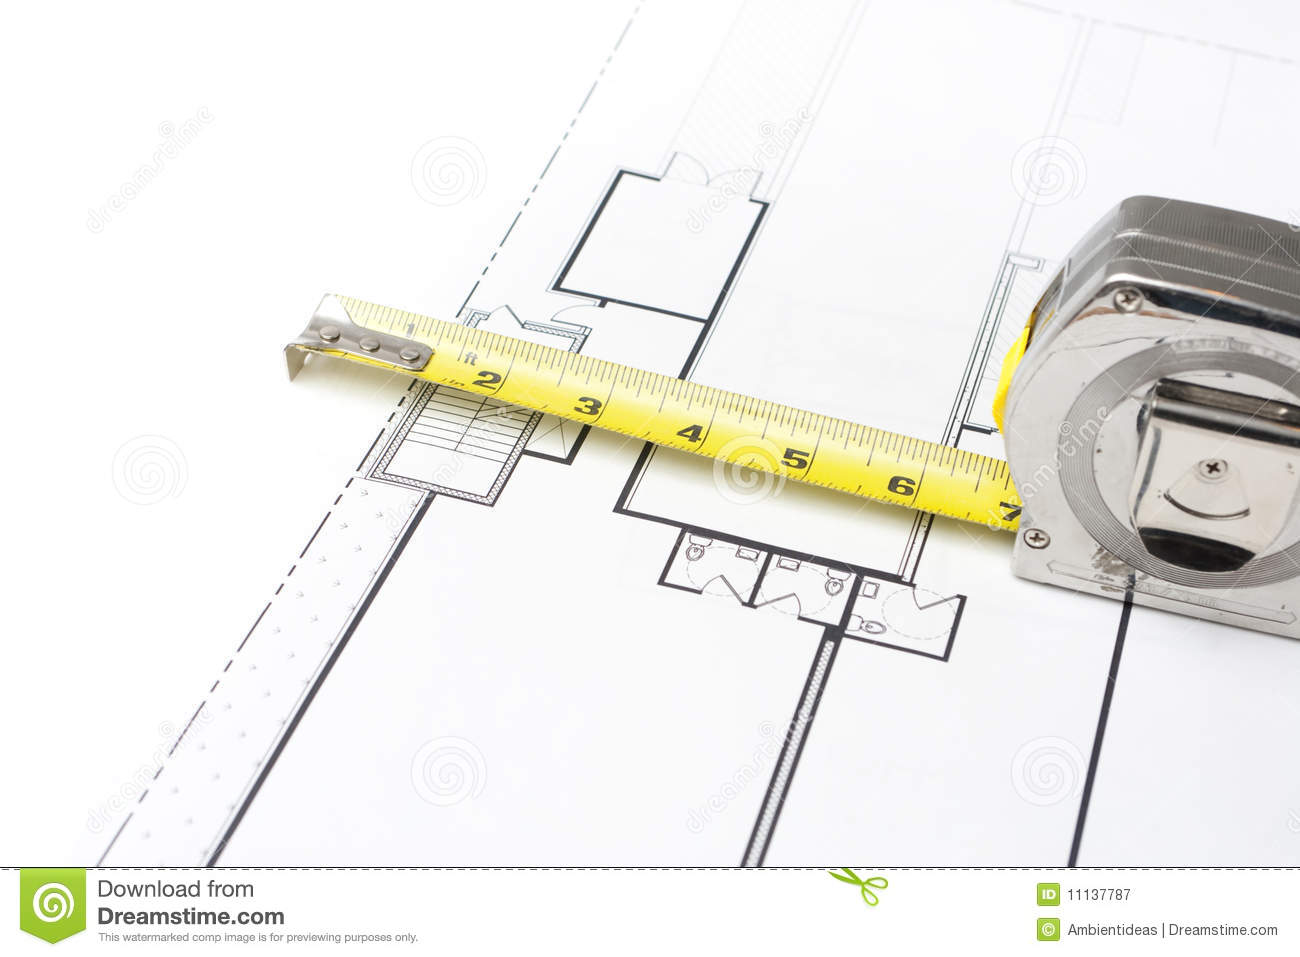 Stupendous Measuring Tape On Floor Plans Stock Image Image Of Diagram Length Wiring Digital Resources Dimetprontobusorg